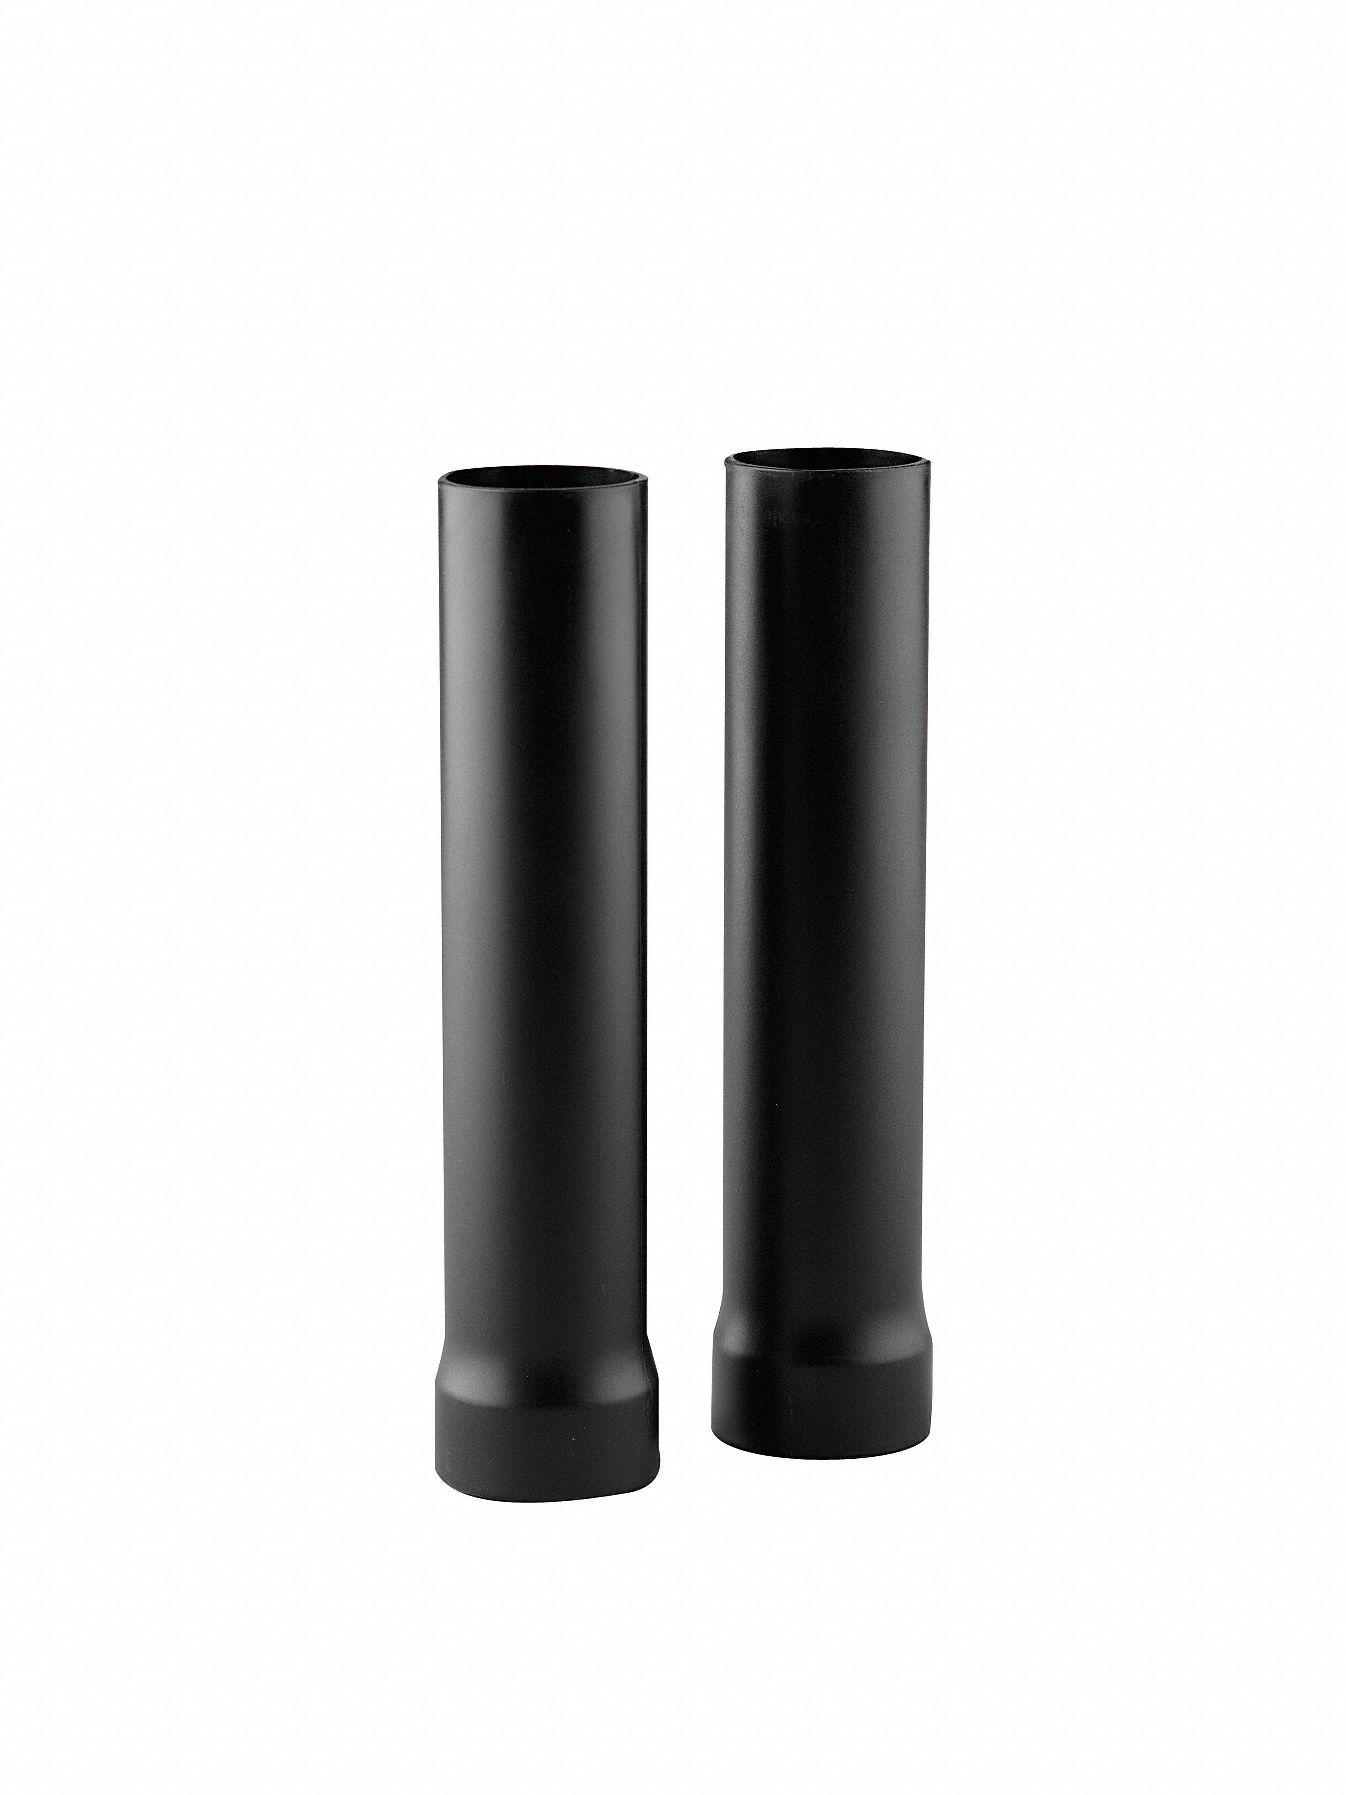 Tall Boot Attachment,  12 in L x 2-1/2 in W x 2-1/2 in H